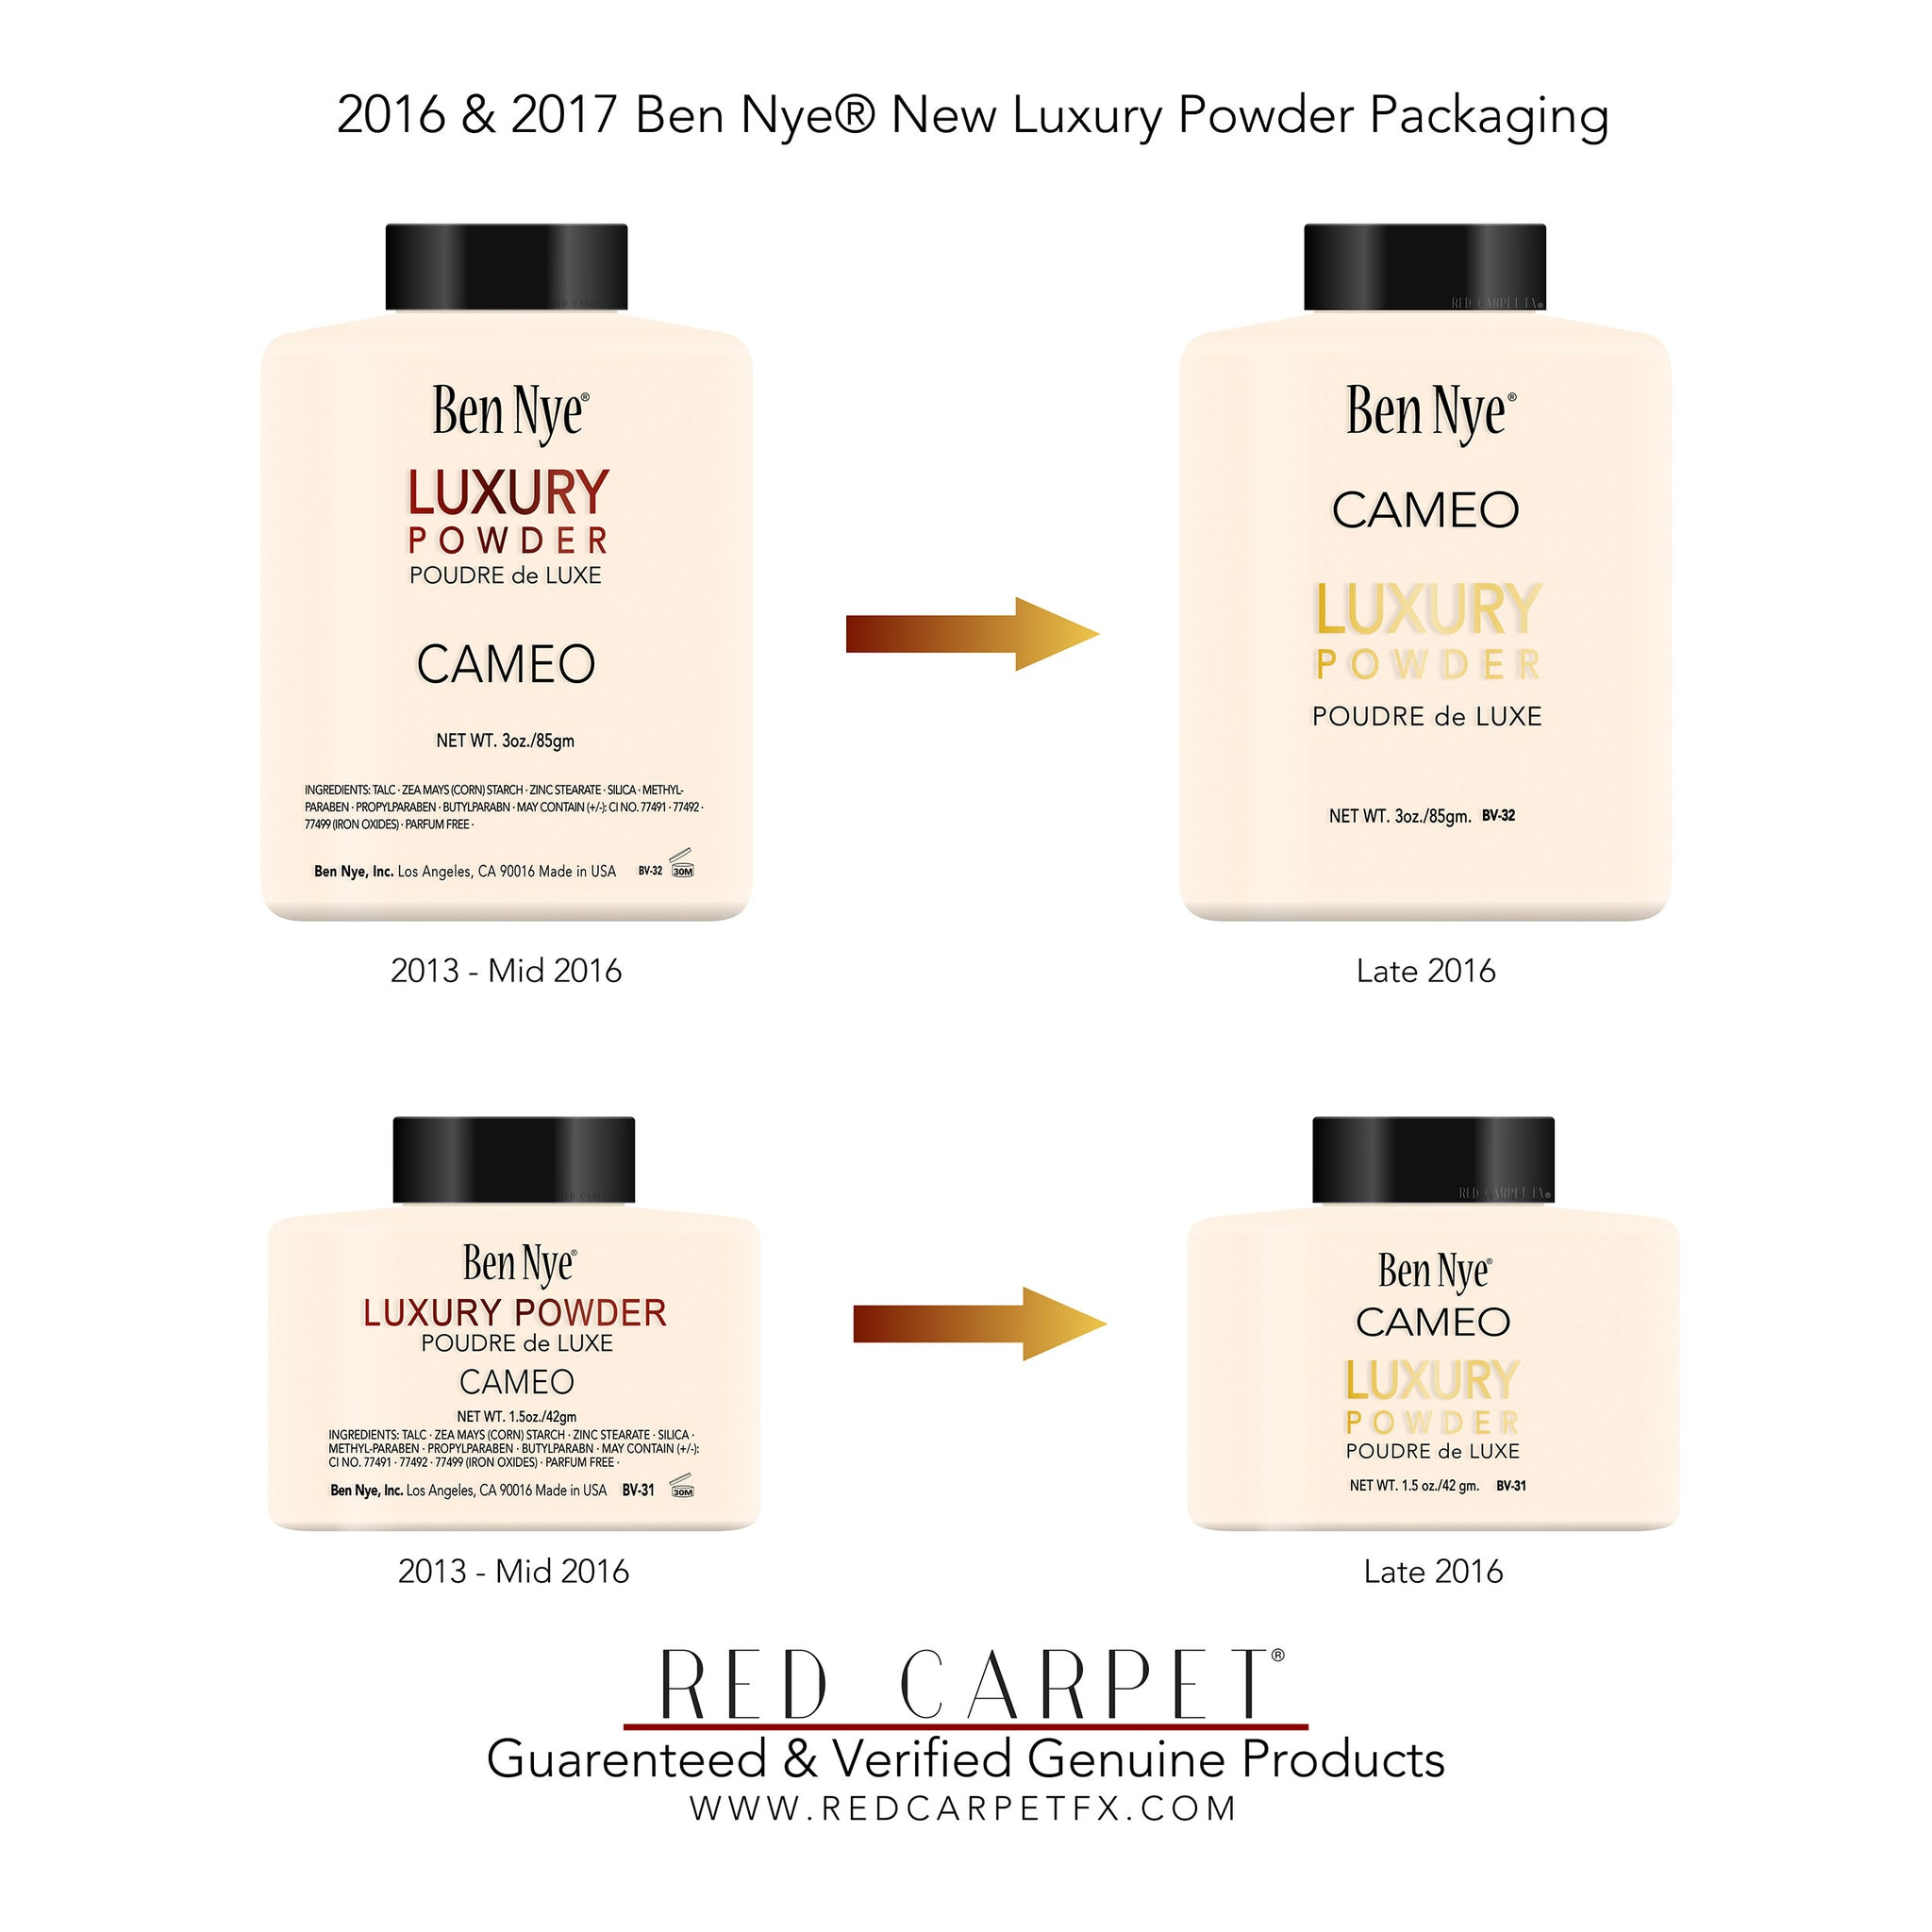 Ben Nye Product Packaging Update - New Luxury Powders